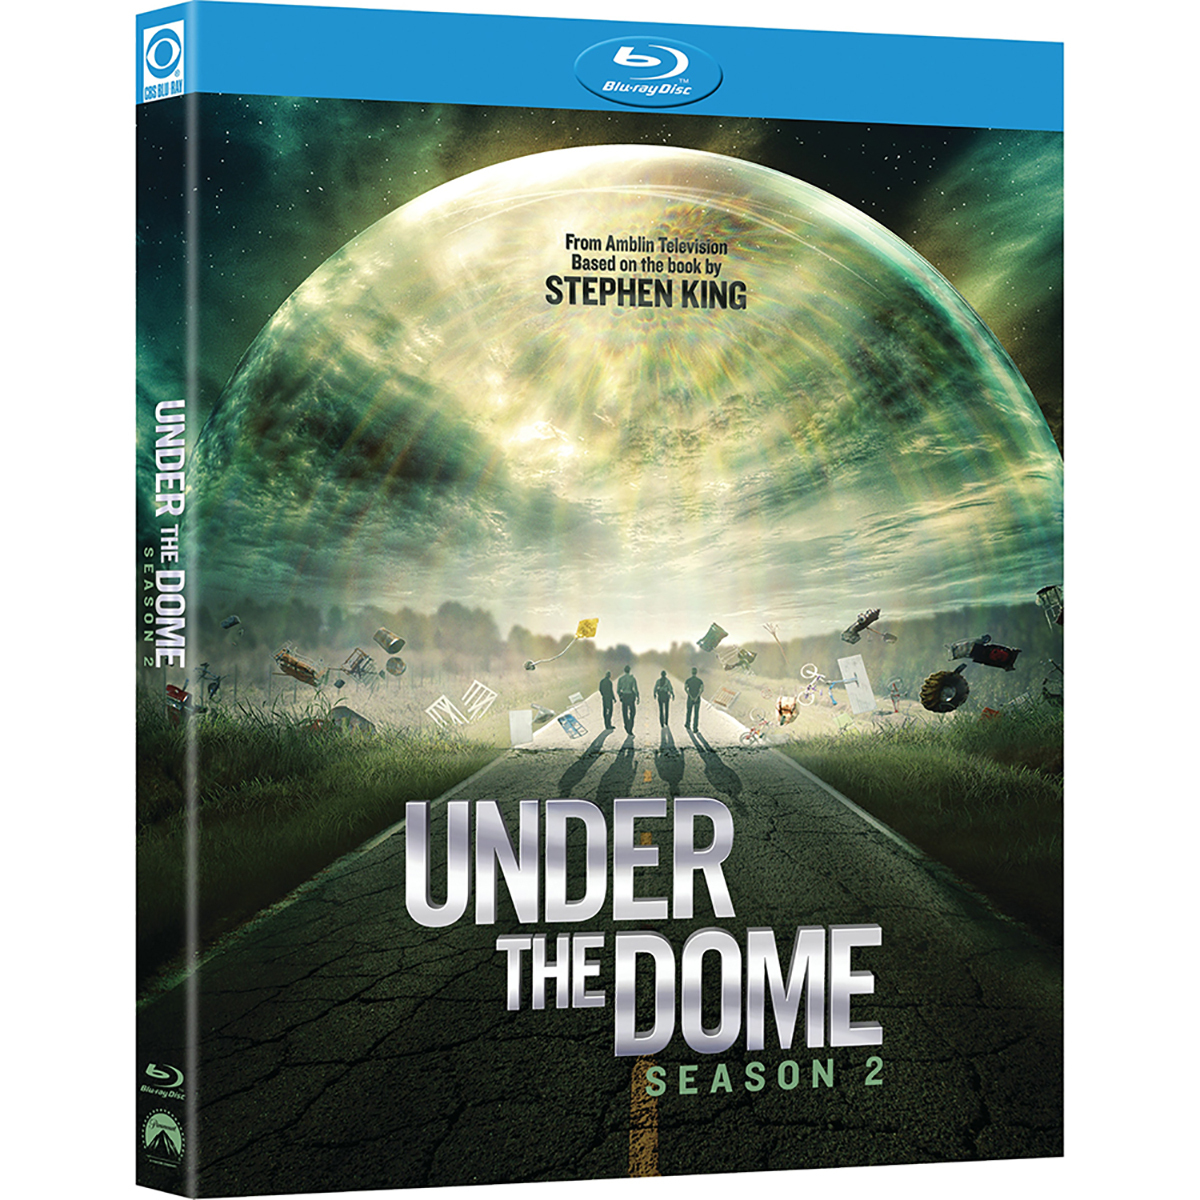 Under The Dome: Season 2 Blu-ray -  DVDs & Videos 6445-702265